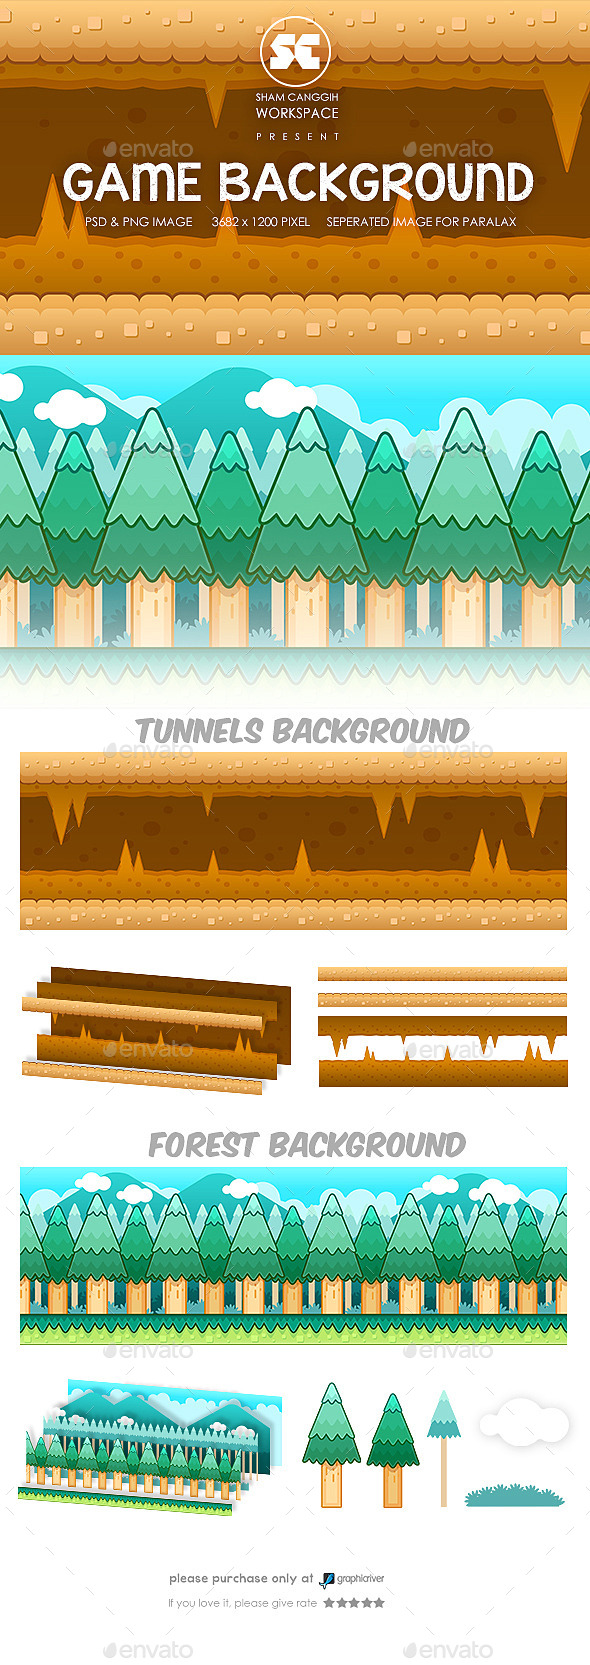 Game Background Tunnel & Forest